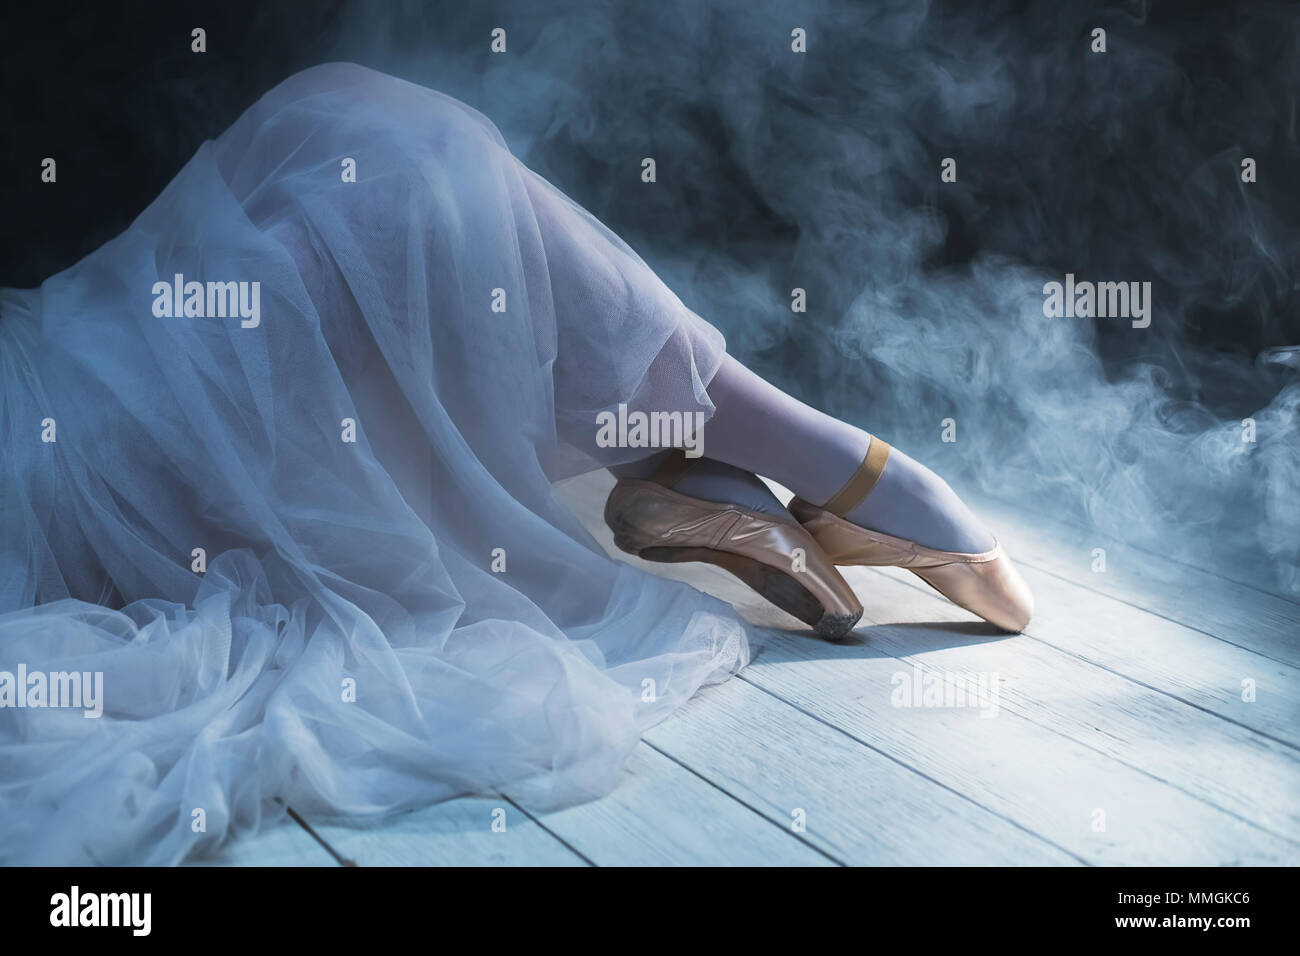 The feet of ballerina in the smoke. Beautiful classic dance background. - Stock Image